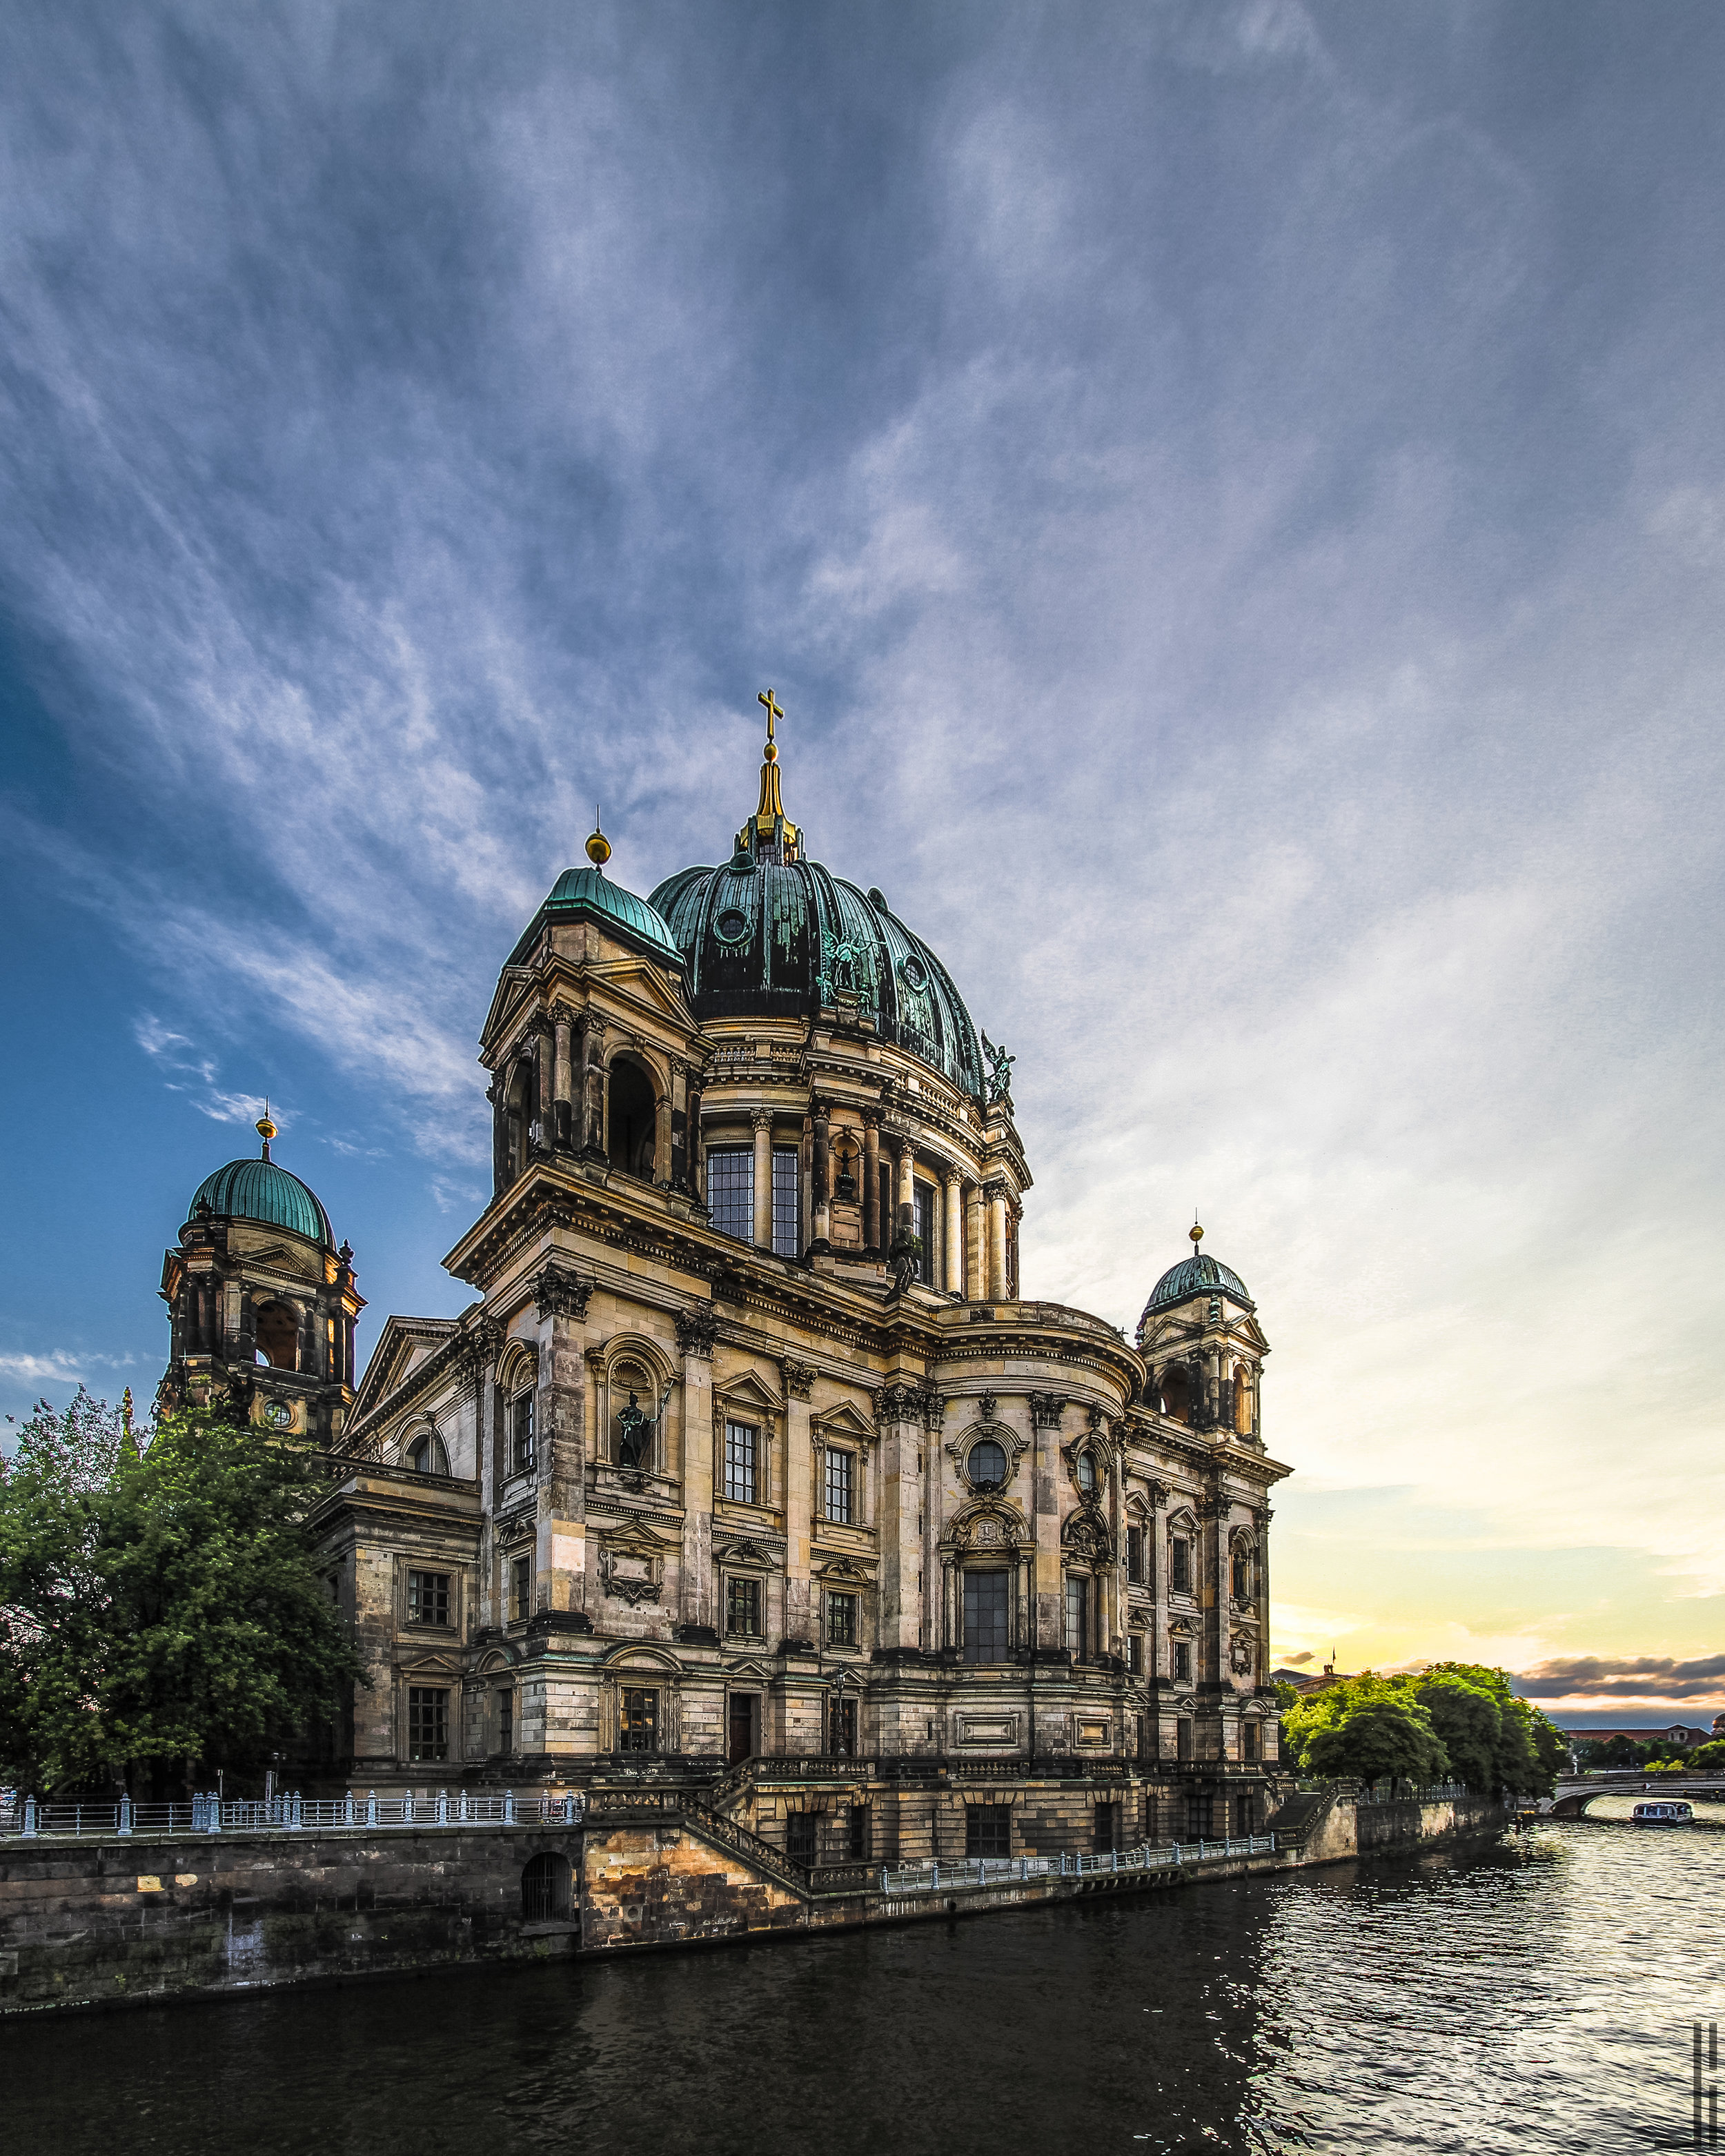 Berliner Dom at Sunset Berlijn - jbax